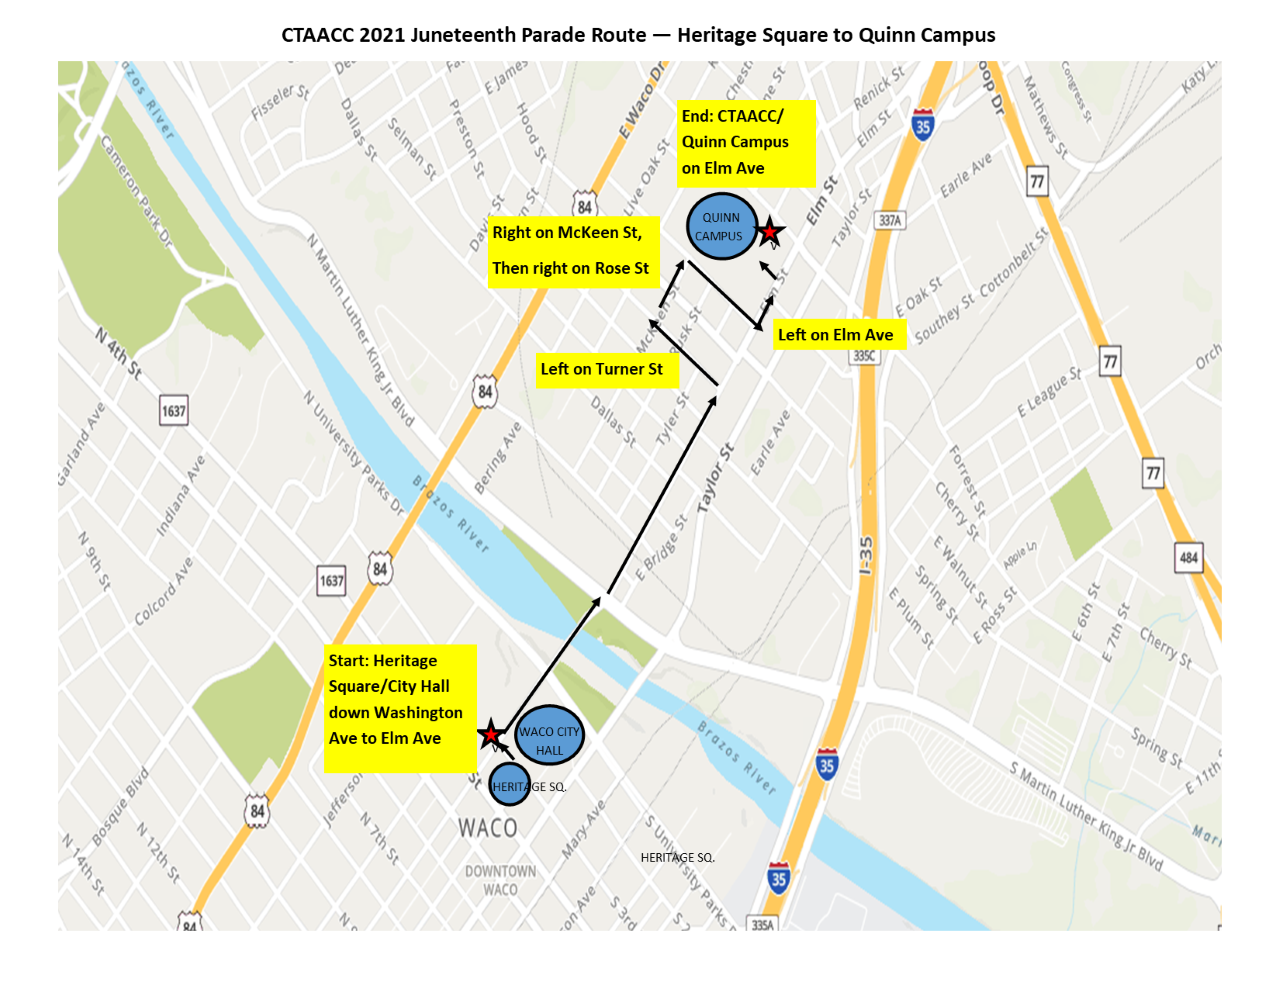 thumbnail_Juneteenth Parade Route 2021.png